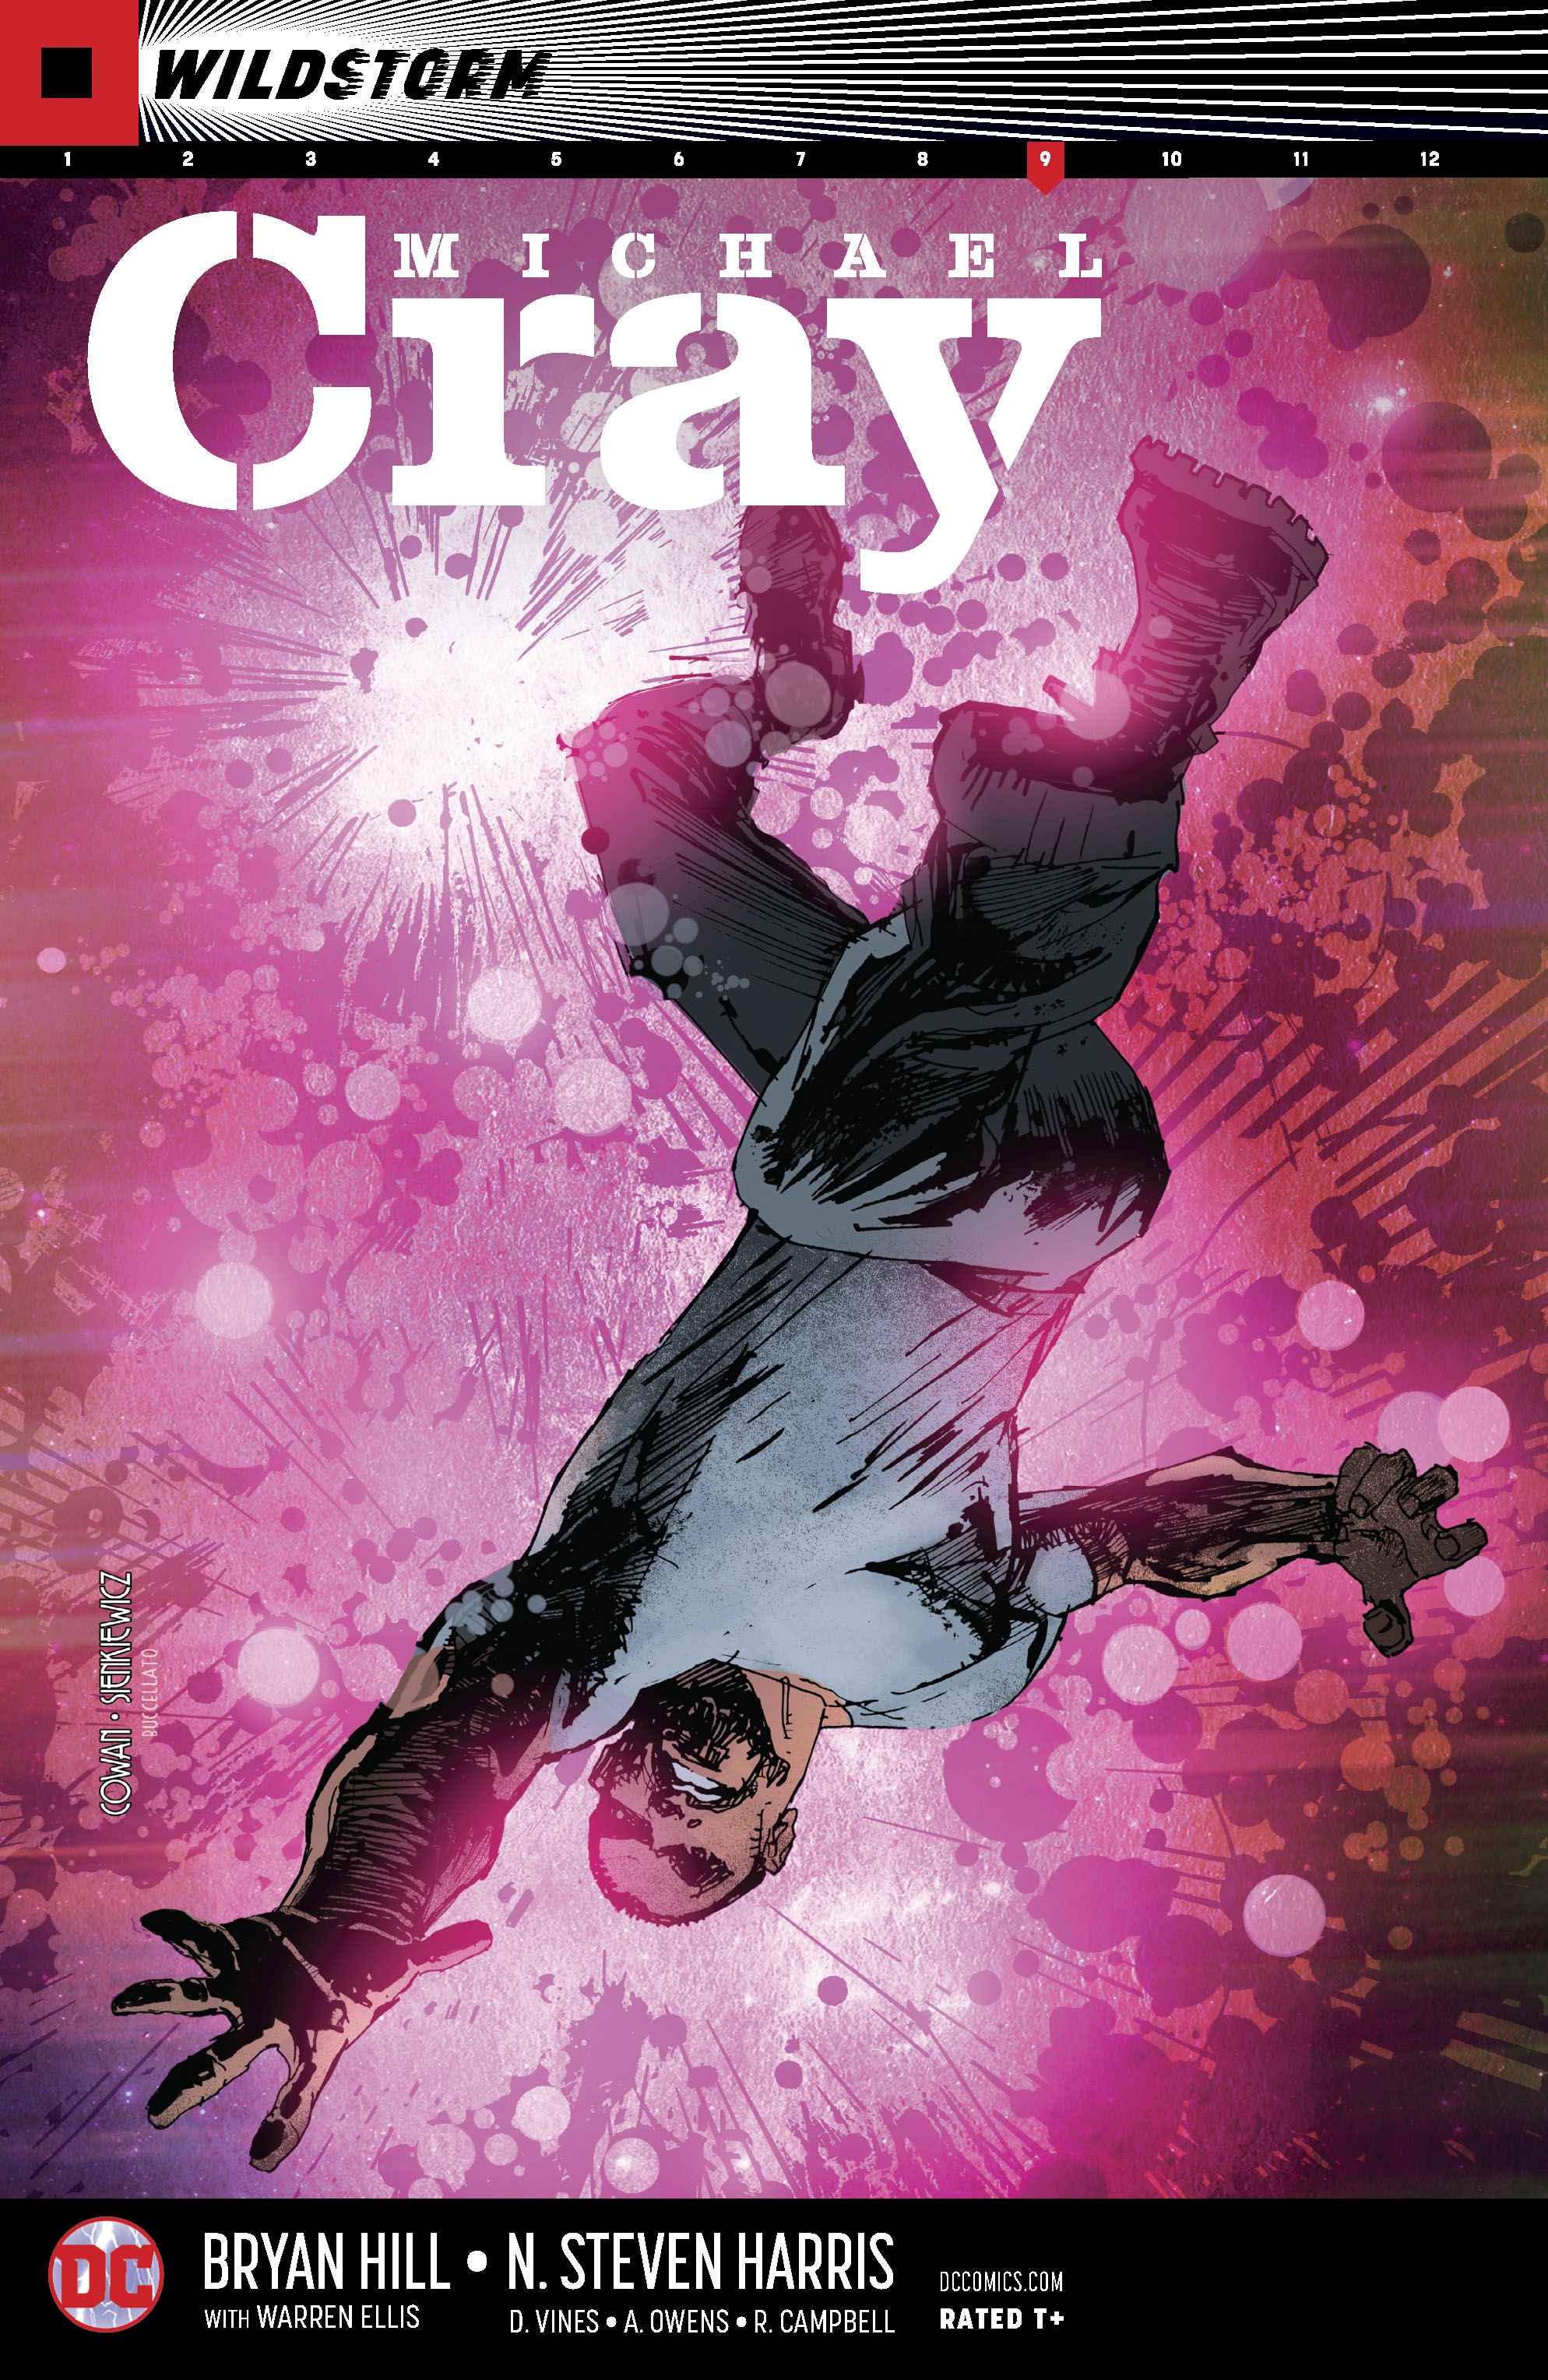 WILDSTORM MICHAEL CRAY #9